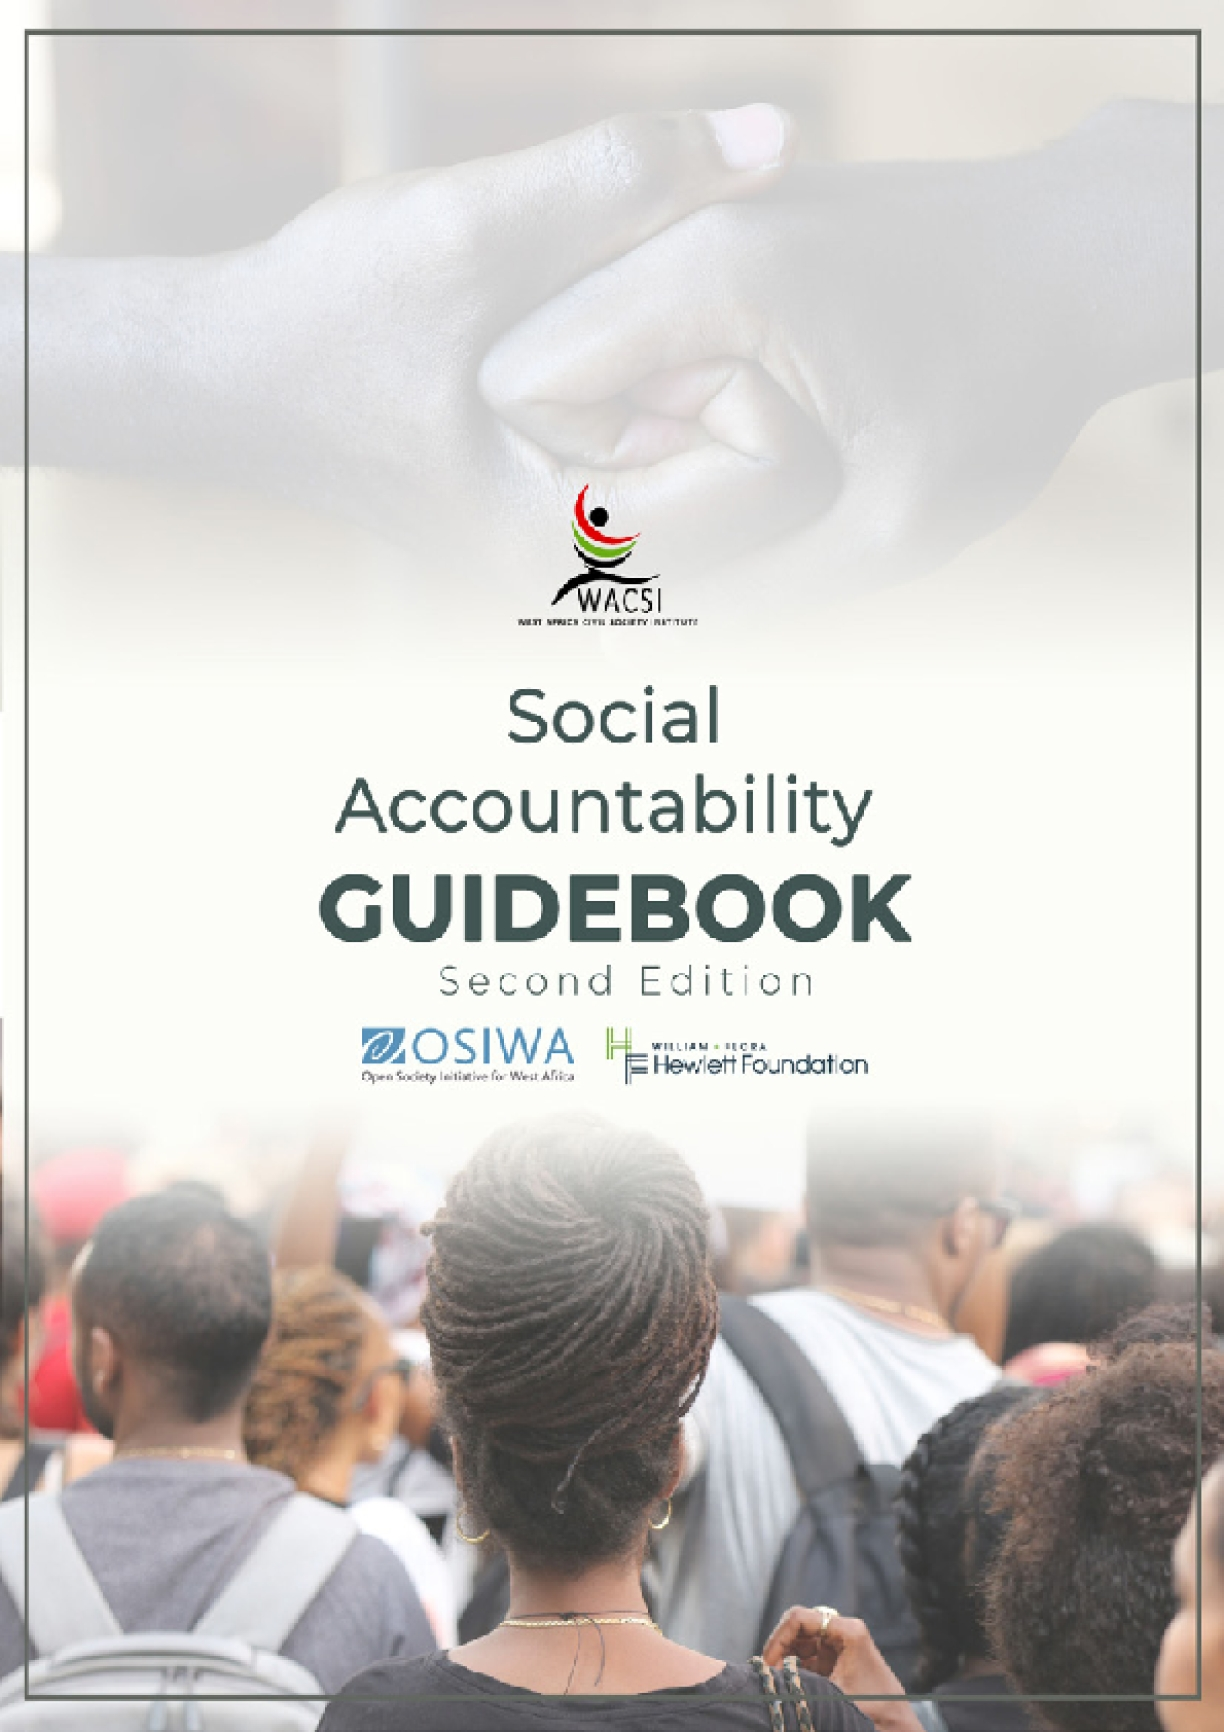 Social Accountability Guidebook (2nd Edition)